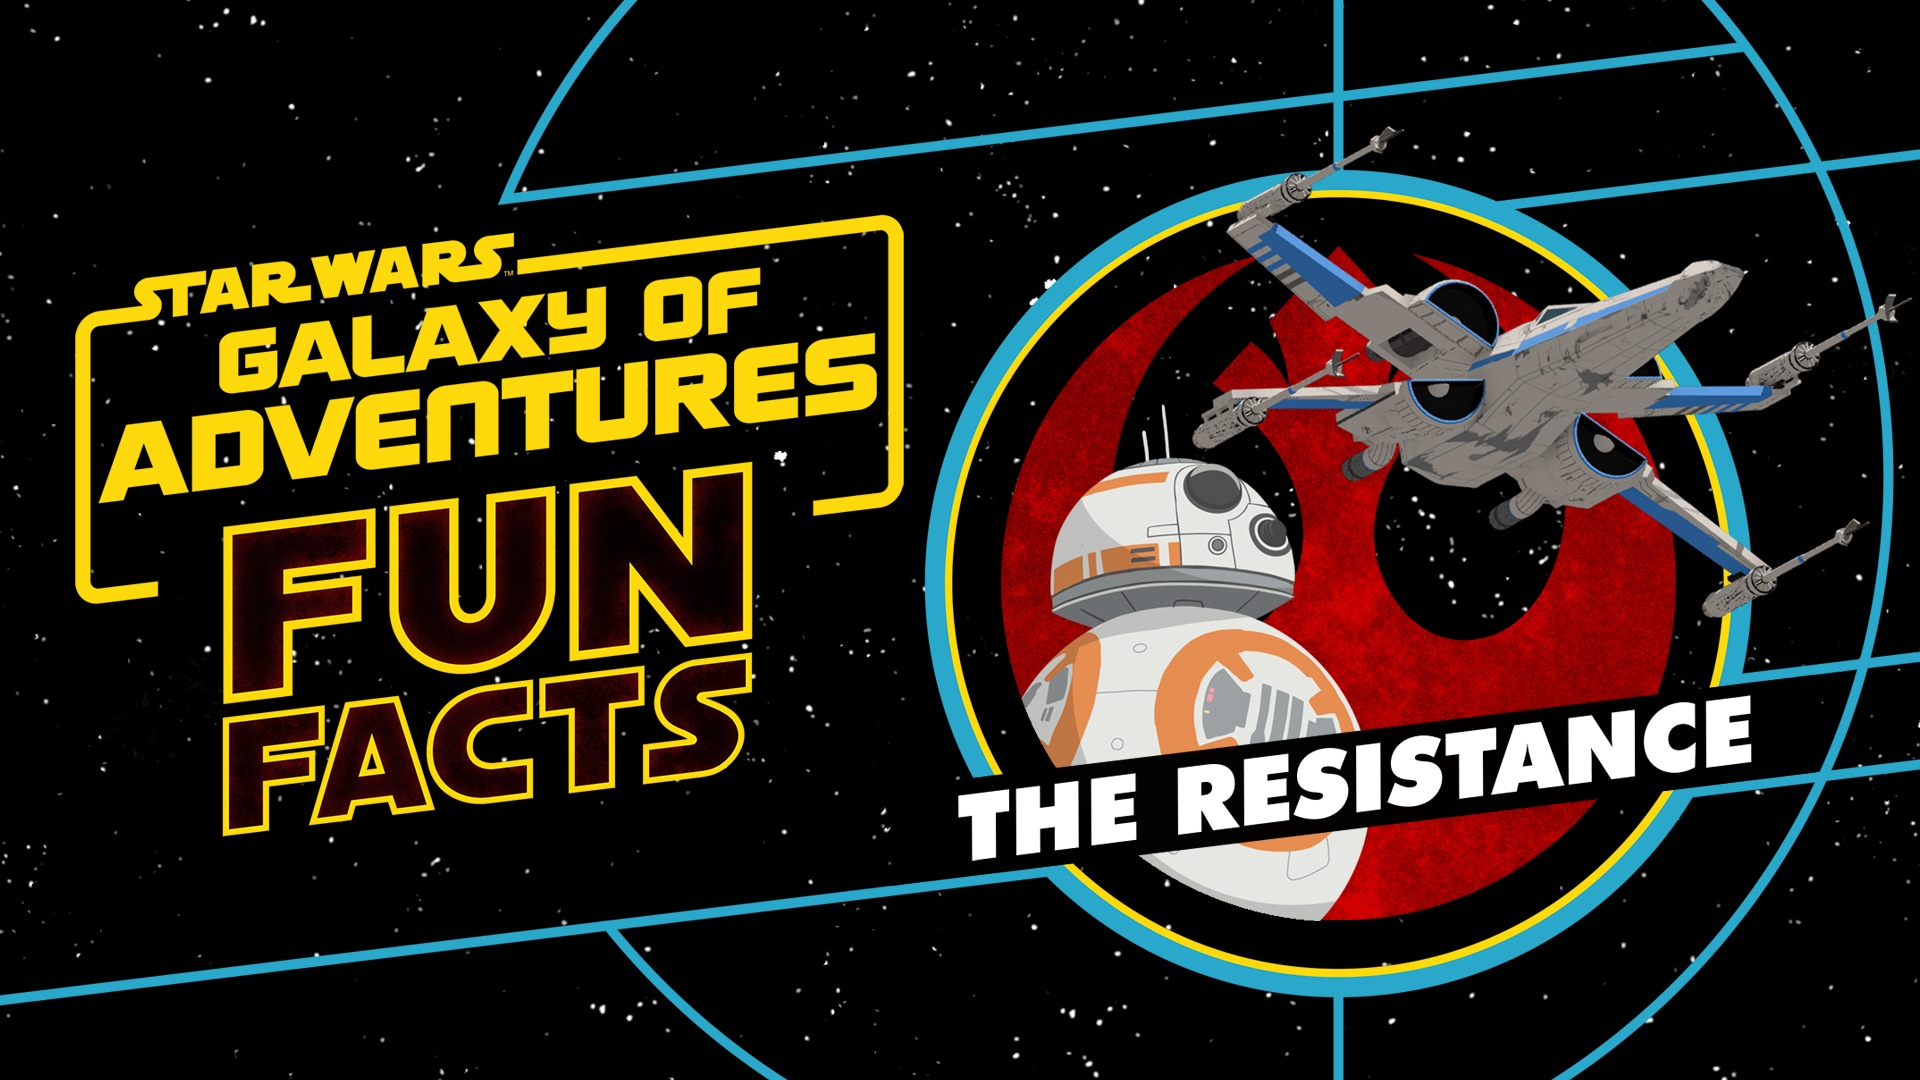 The Resistance | Star Wars Galaxy of Adventures Fun Facts